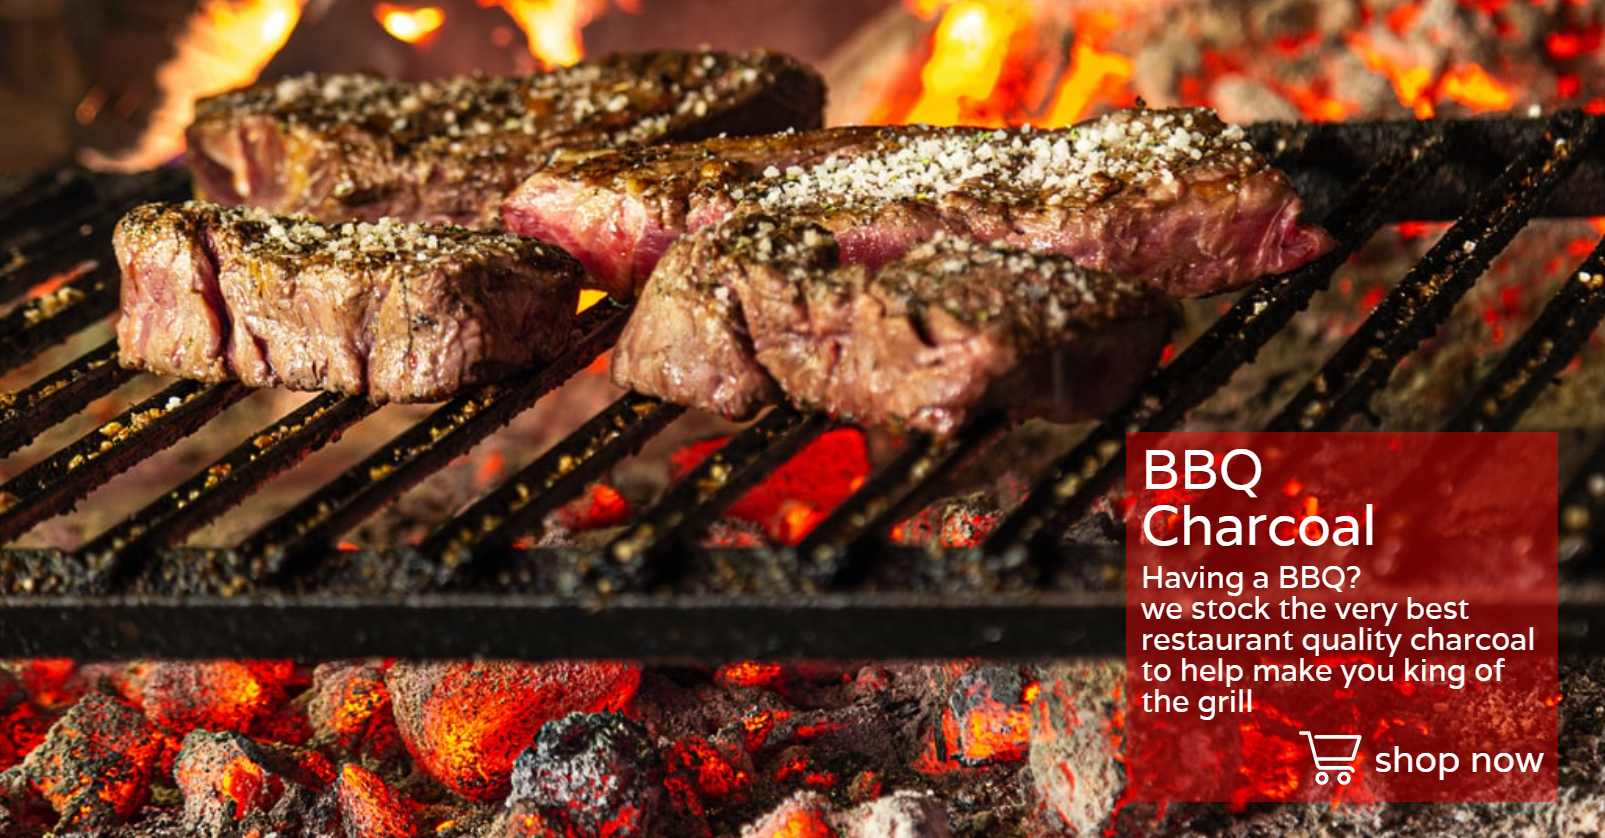 BBQ charcoal for sale in Halifax and Huddersfield